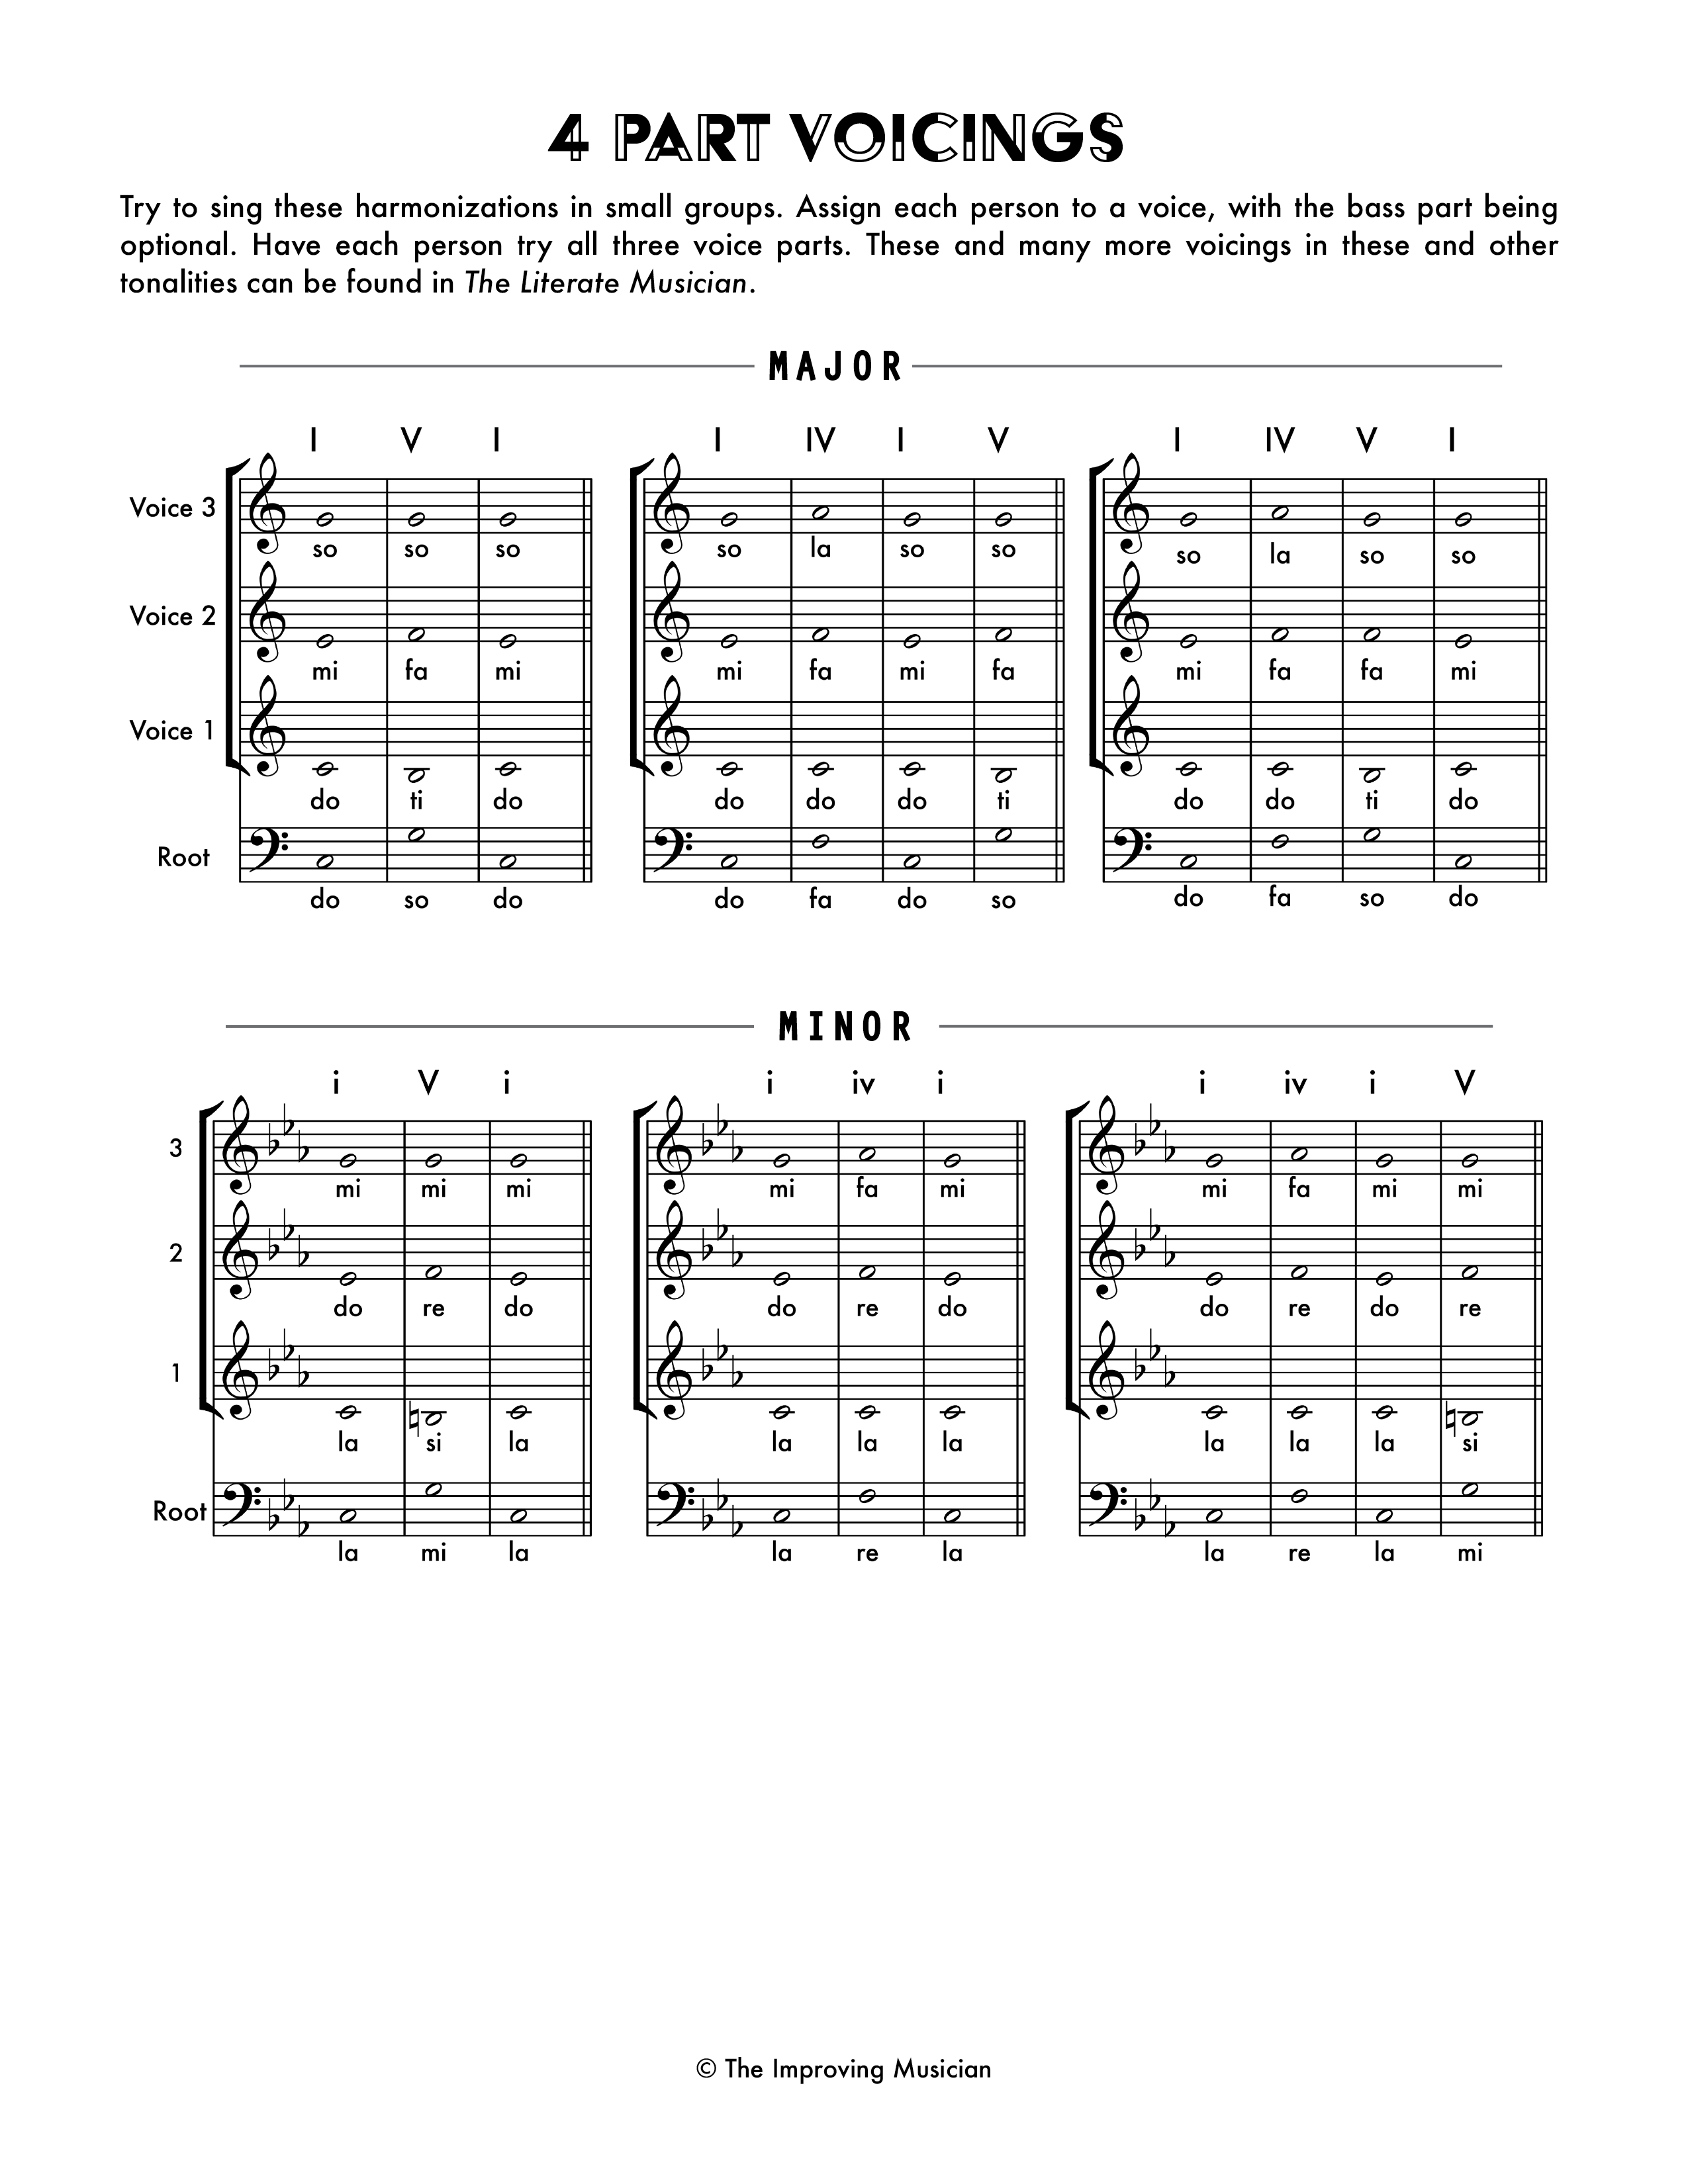 4 Part Voicings - Student Library